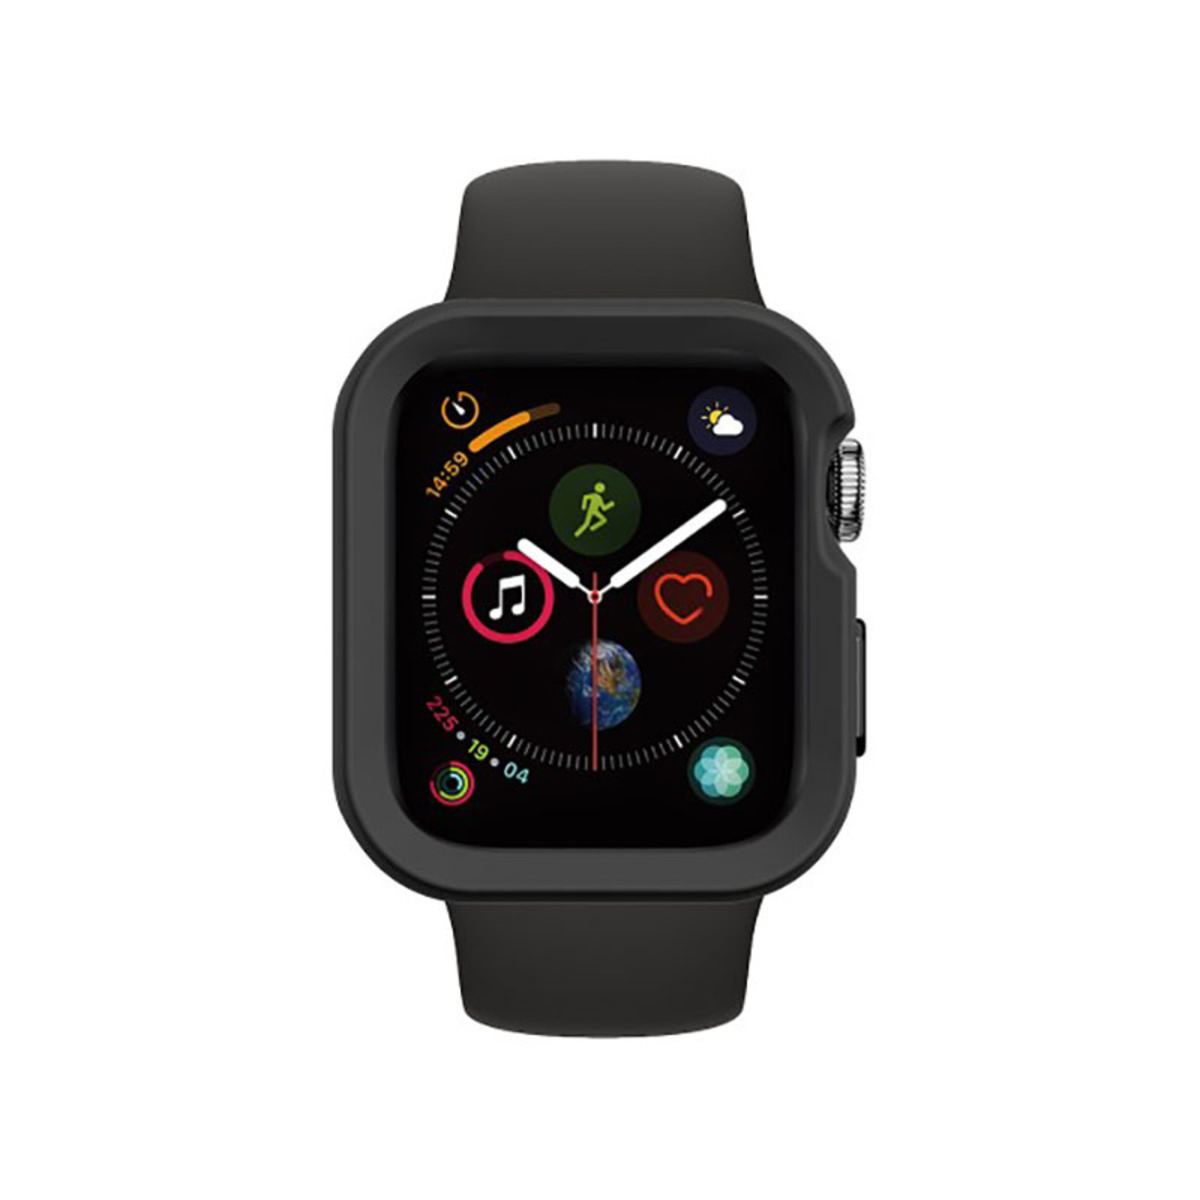 Apple Watch 保護殼 40mm - 黑